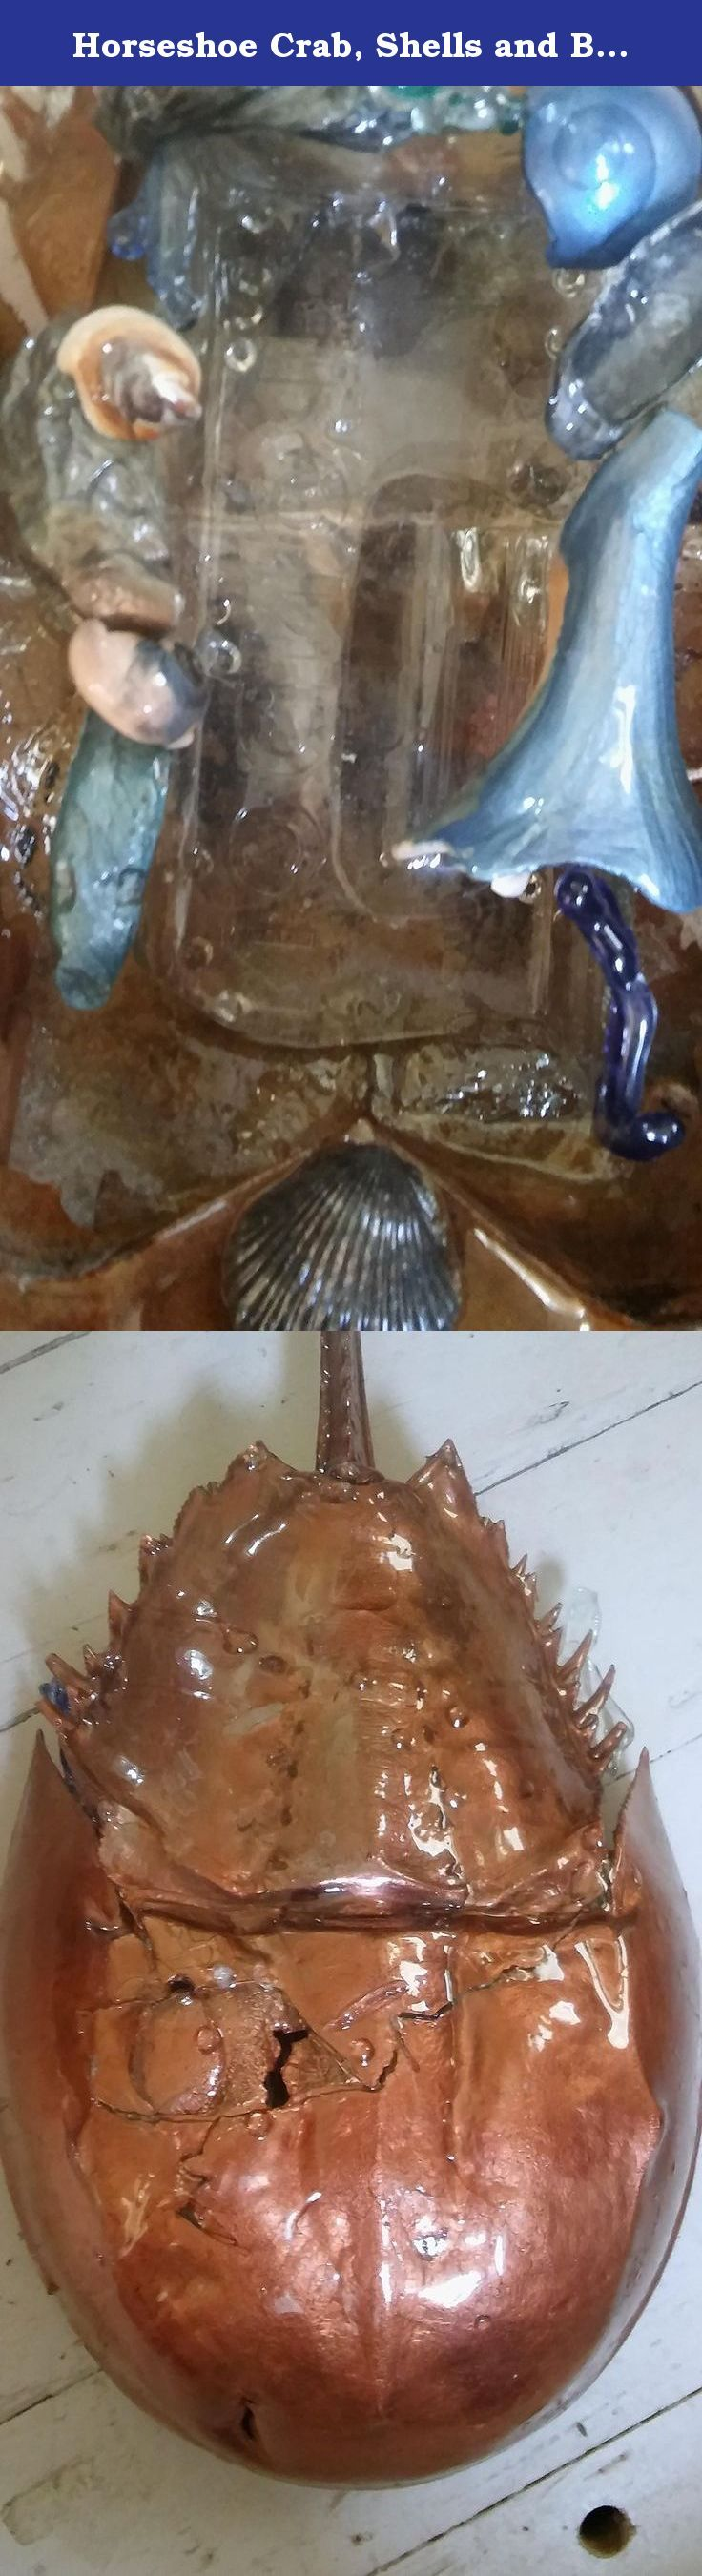 Horseshoe Crab, Shells and Bottle Candy Plate. Authentic intact horseshoe crab shell with cut bottle fitted into it decorated with painted shells and torched glass and treated with polymer for durability.